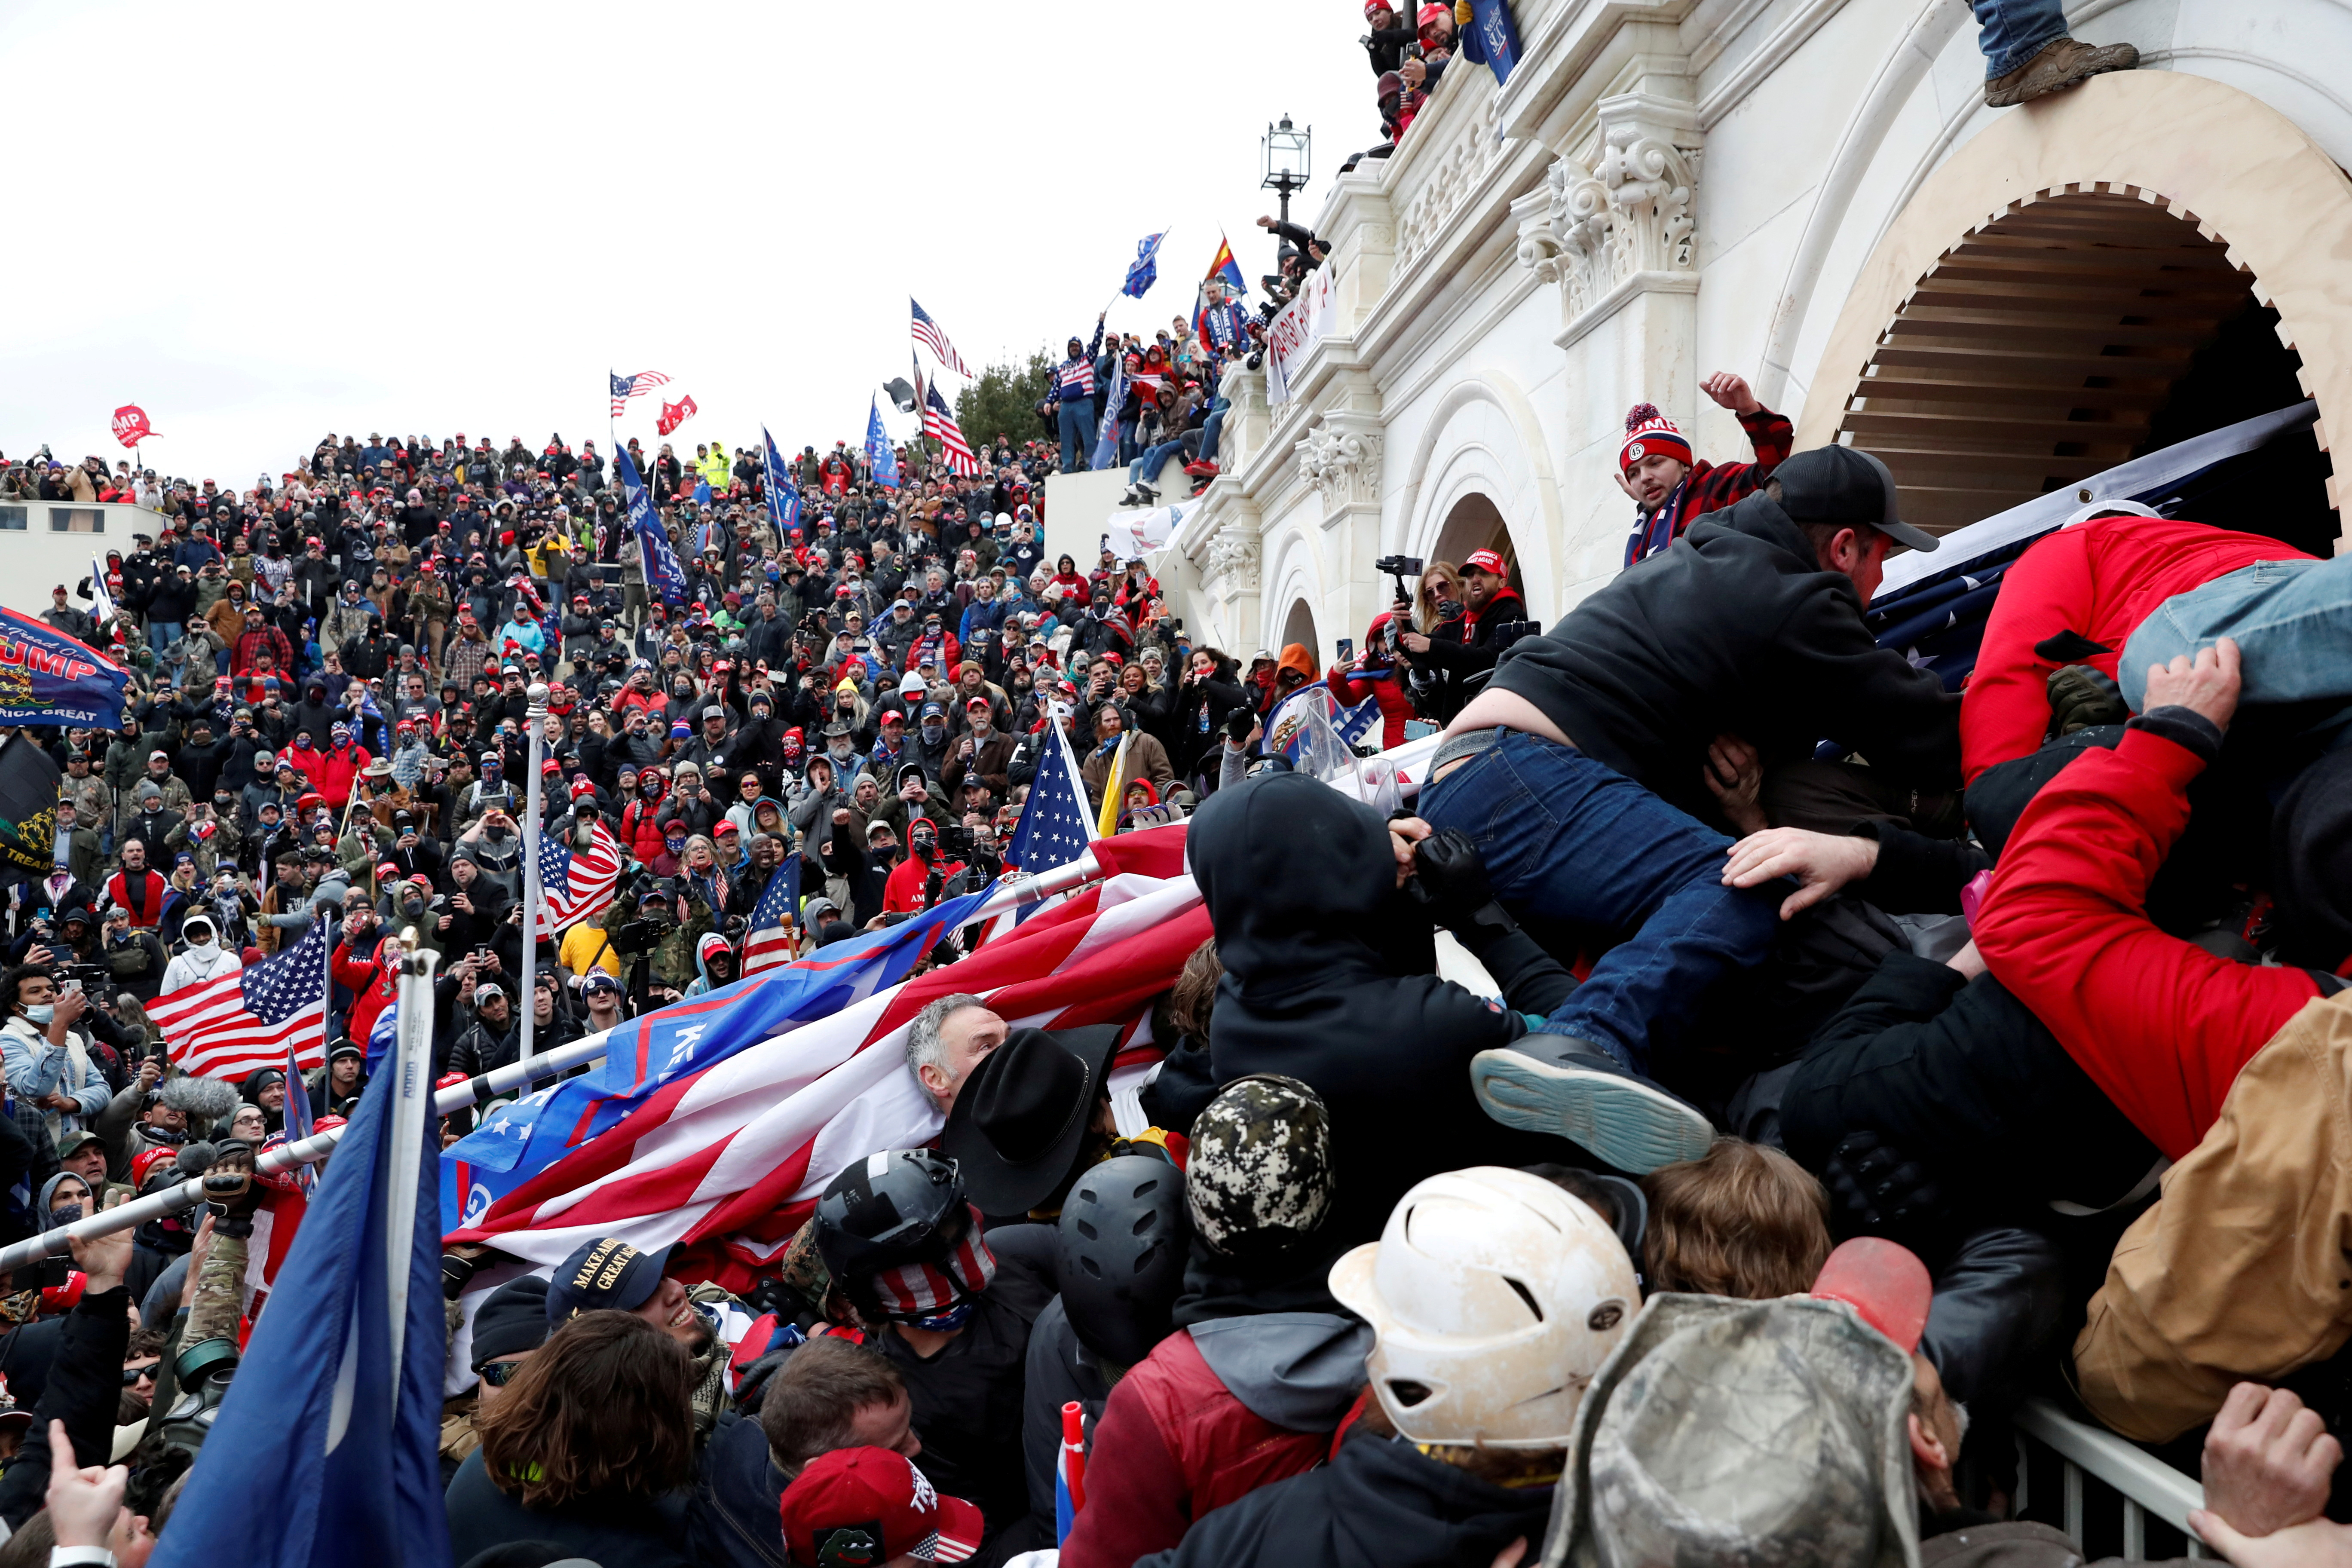 Pro-Trump protesters storm into the U.S. Capitol during clashes with police, during a rally to contest the certification of the 2020 U.S. presidential election results by the U.S. Congress, in Washington, U.S, January 6, 2021. REUTERS/Shannon Stapleton/File Photo